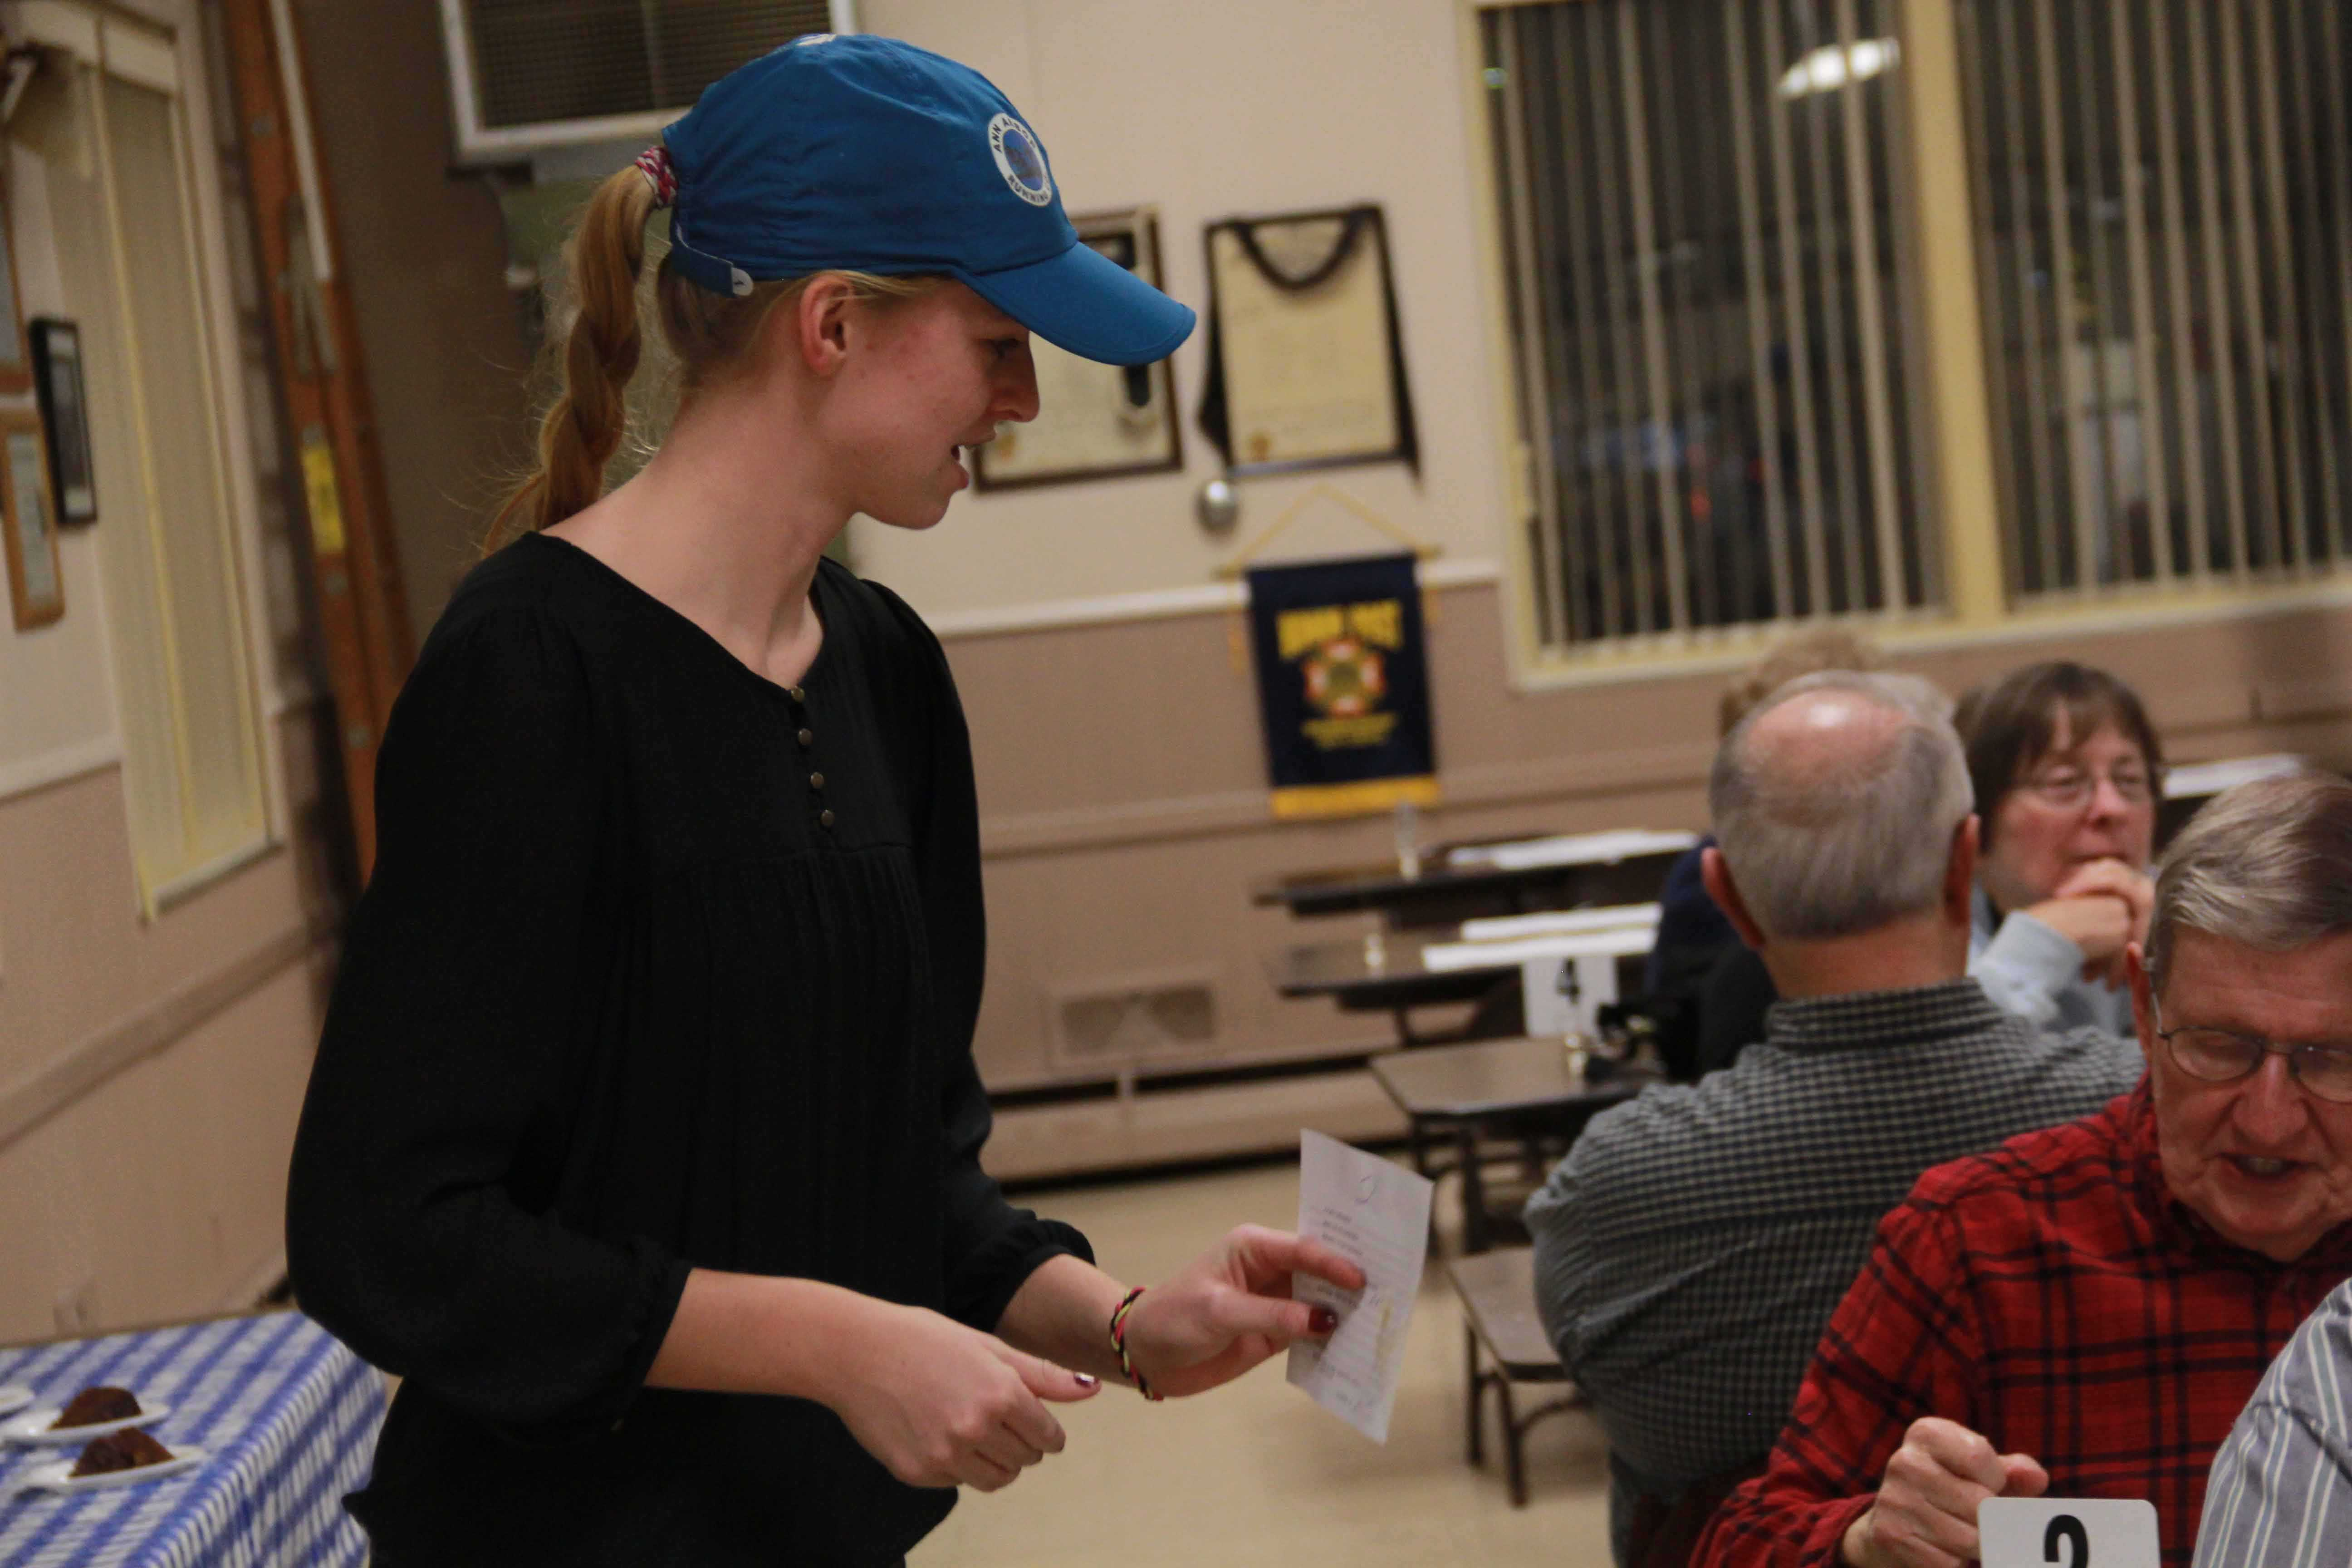 Junior Jenna Keiser volunteers at the VFW Hall for their weekly Friday Fish Fry. NHS volunteers help out at the Fish Fry every Friday, making it one of the main events of the organization.